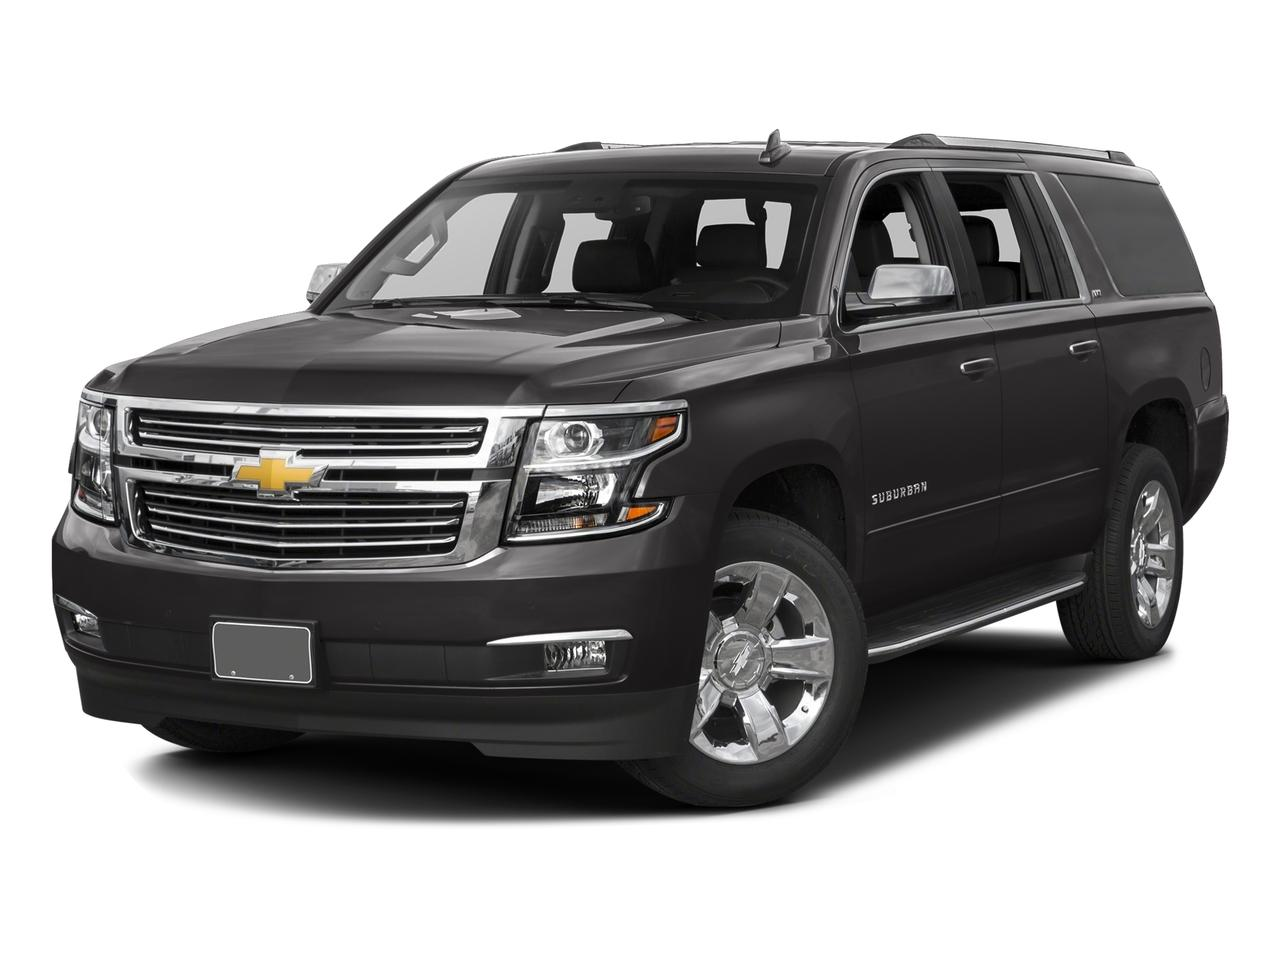 2016 Chevrolet Suburban Vehicle Photo in State College, PA 16801